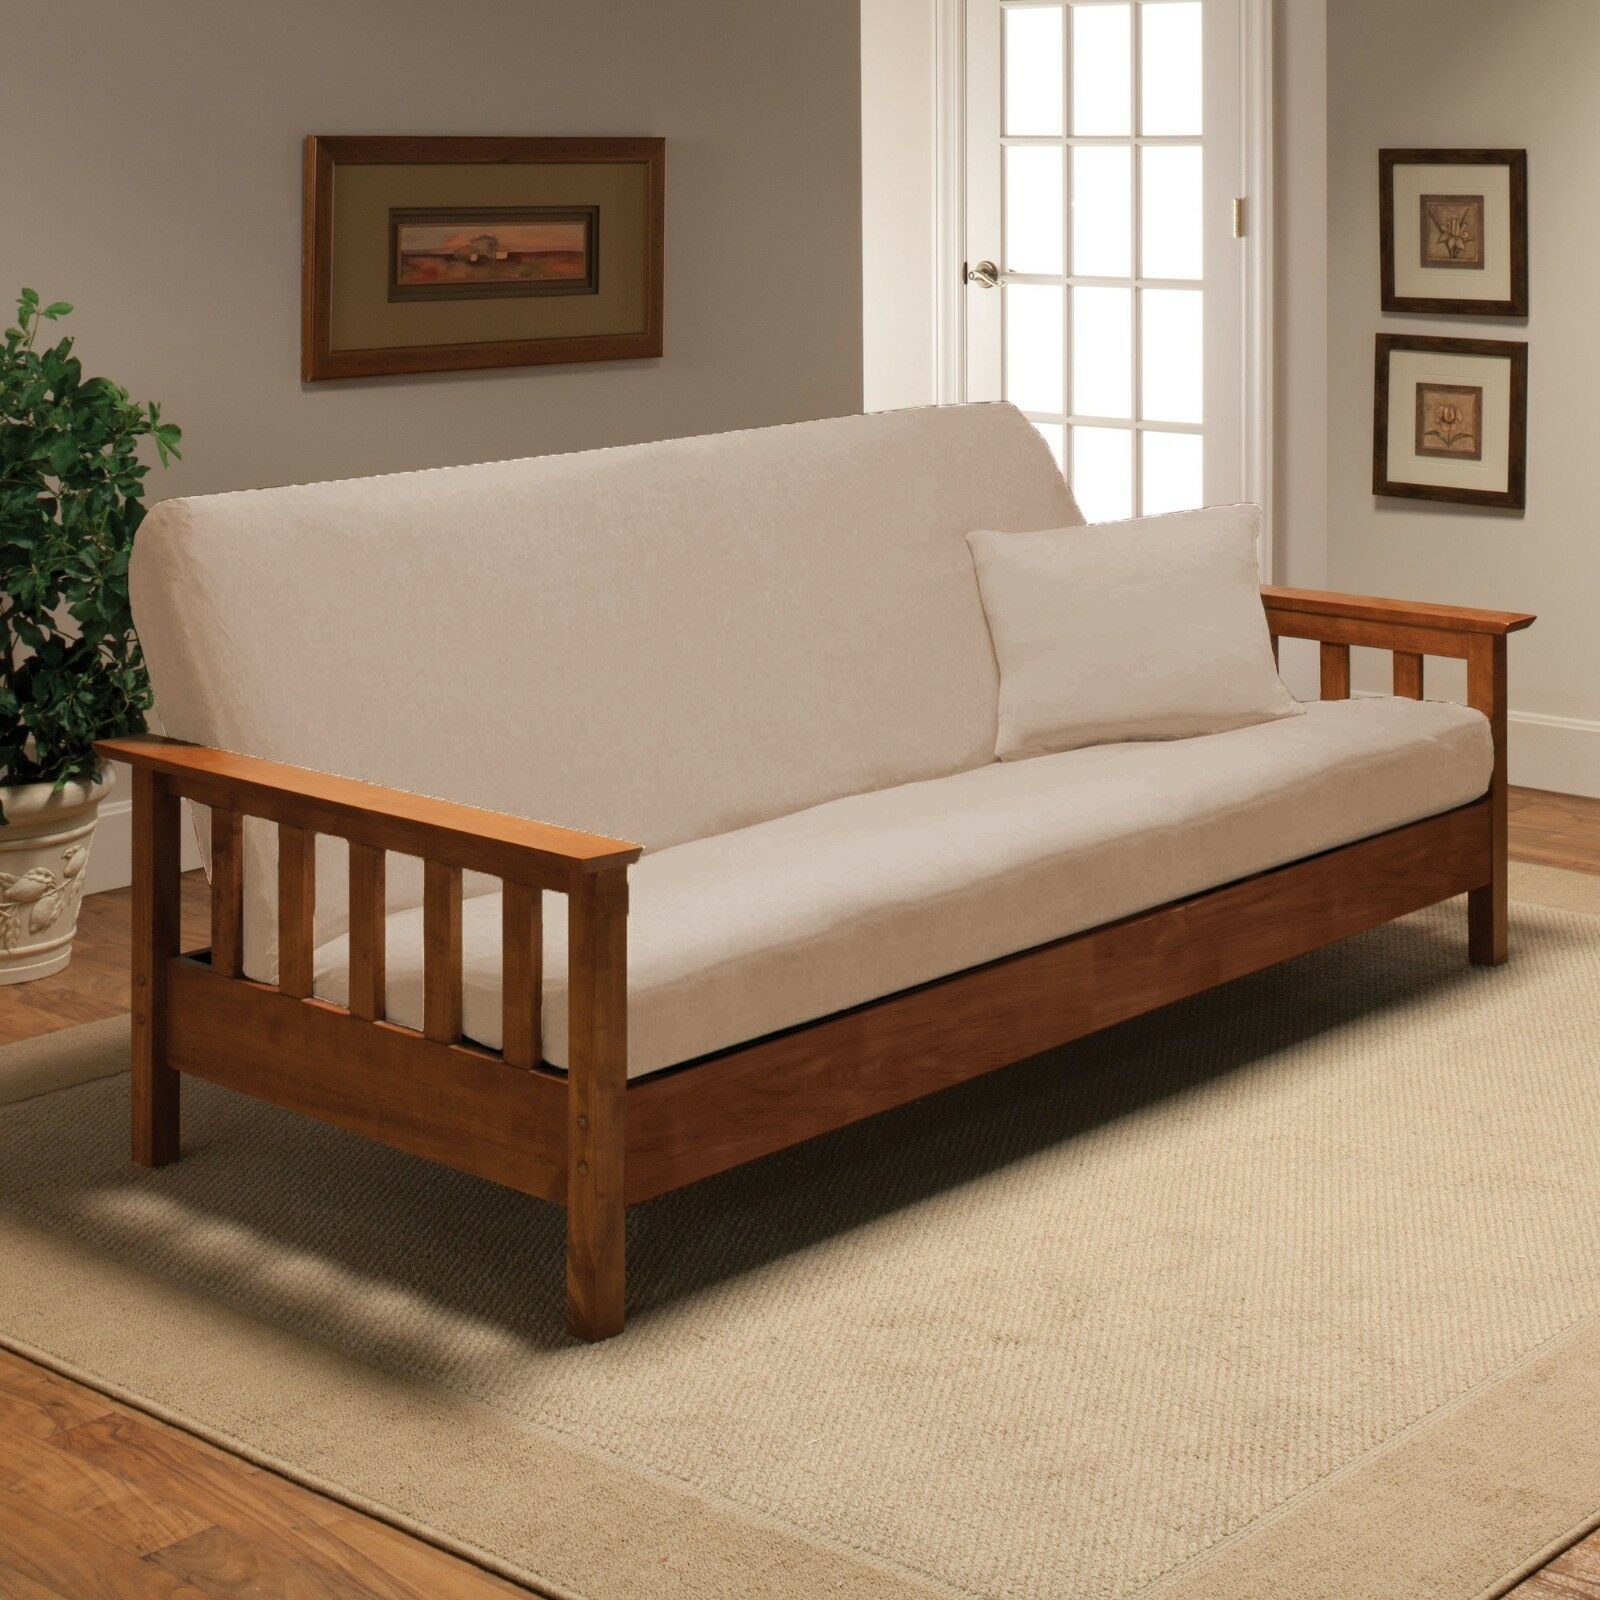 Madison Jersey Linen Futon Stretch Slipcover Couch Cover Furniture Futon Cover Ebay